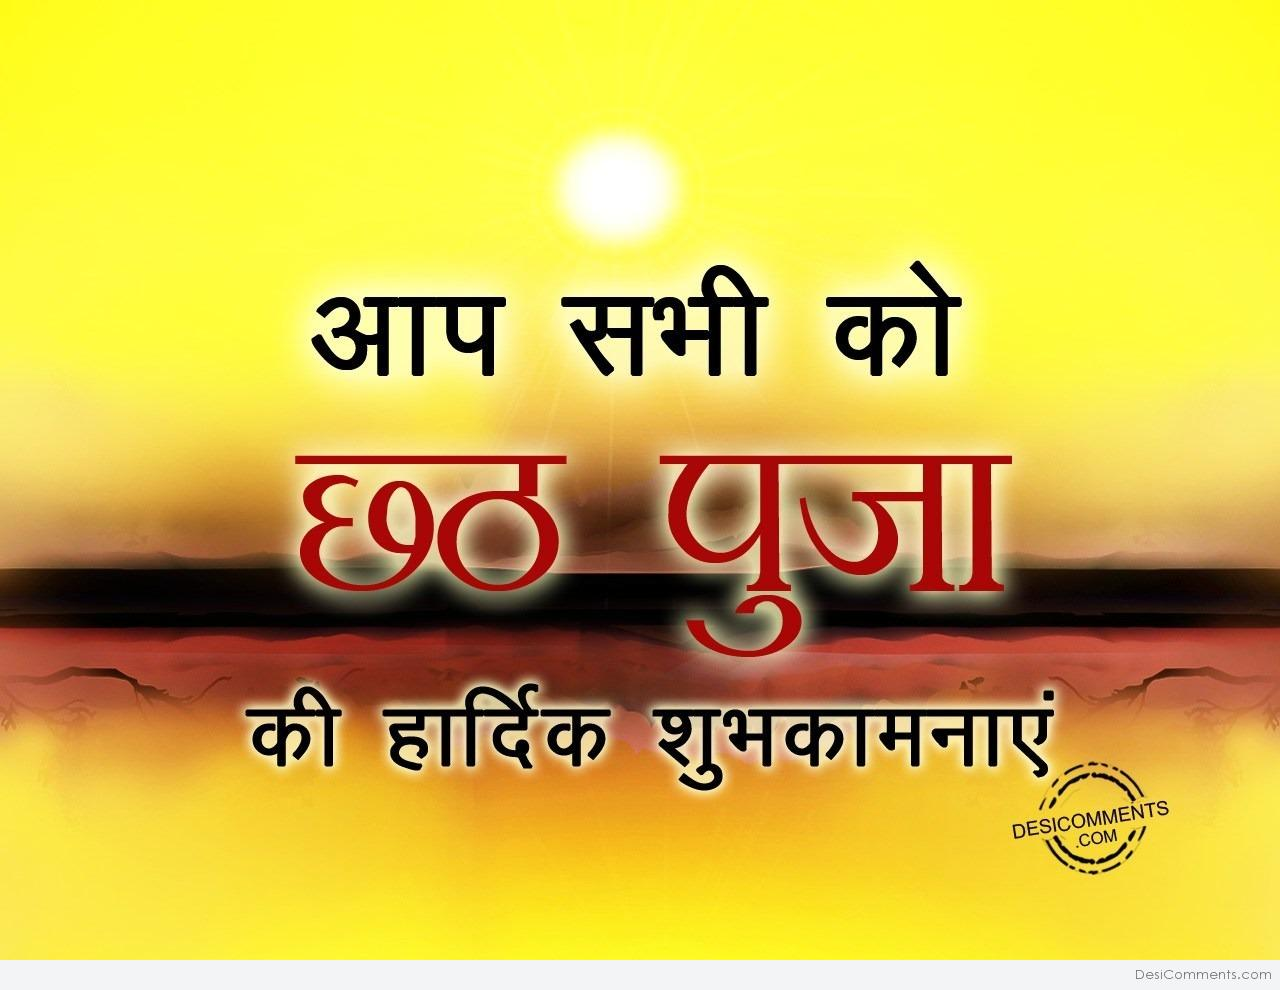 Best 90+ Happy Chhath Puja 2019 Wishes, Quotes, Images and